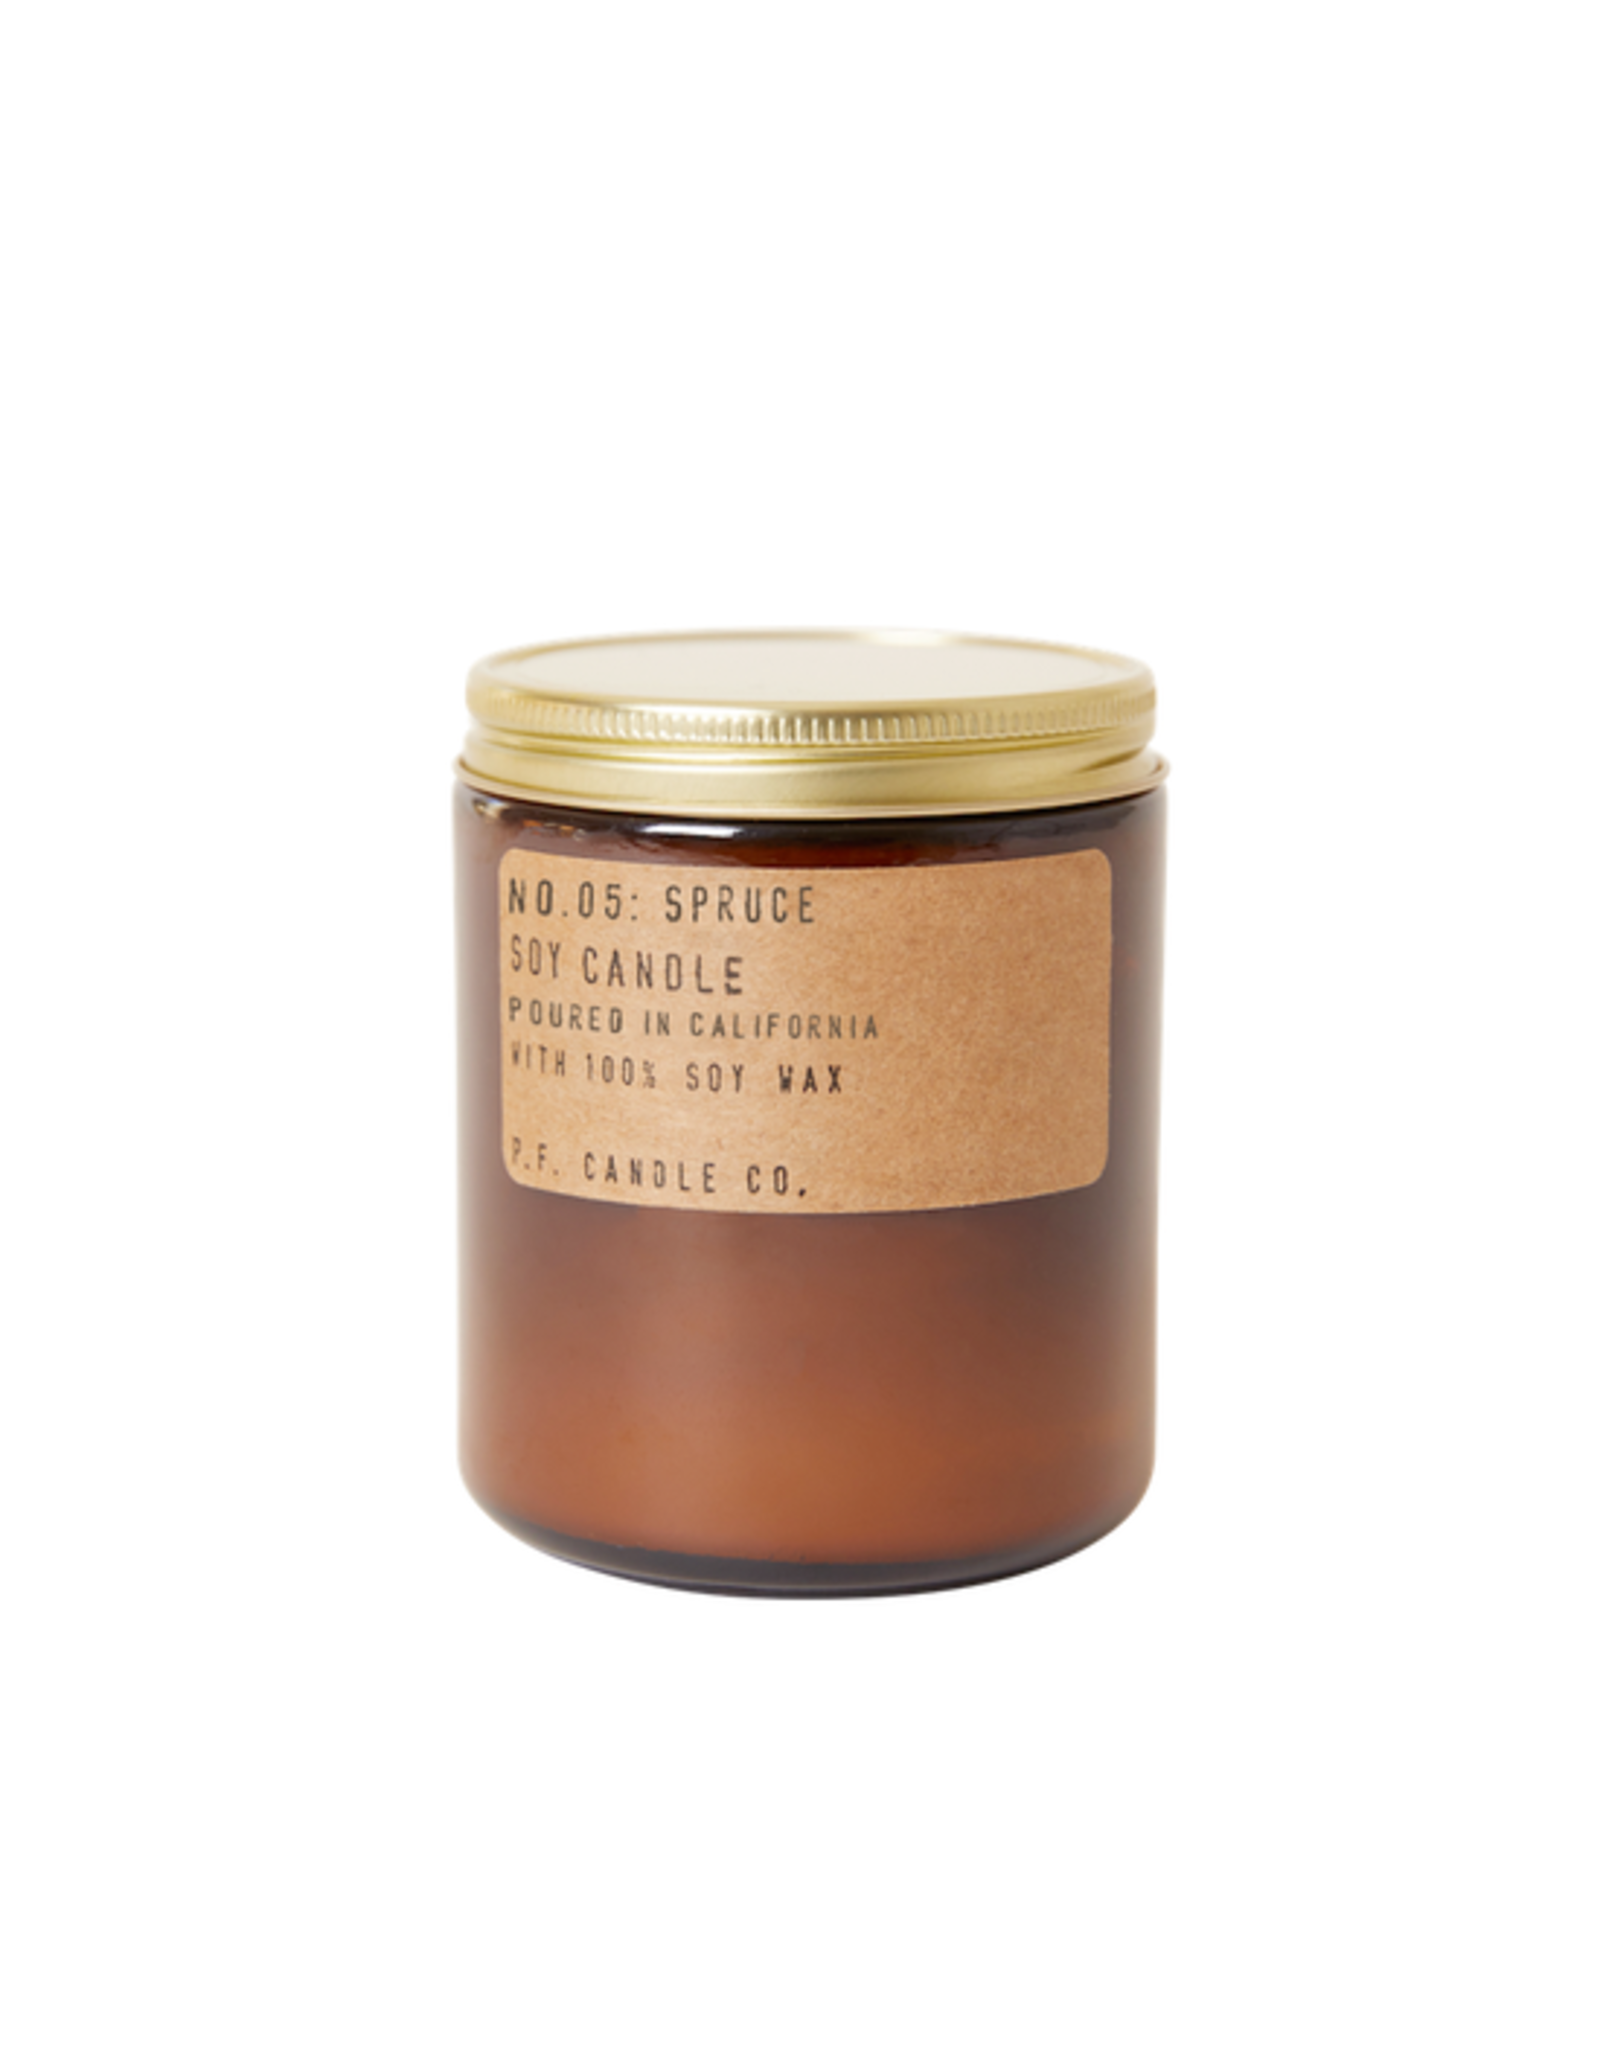 7.2 oz Soy Candle - Spruce